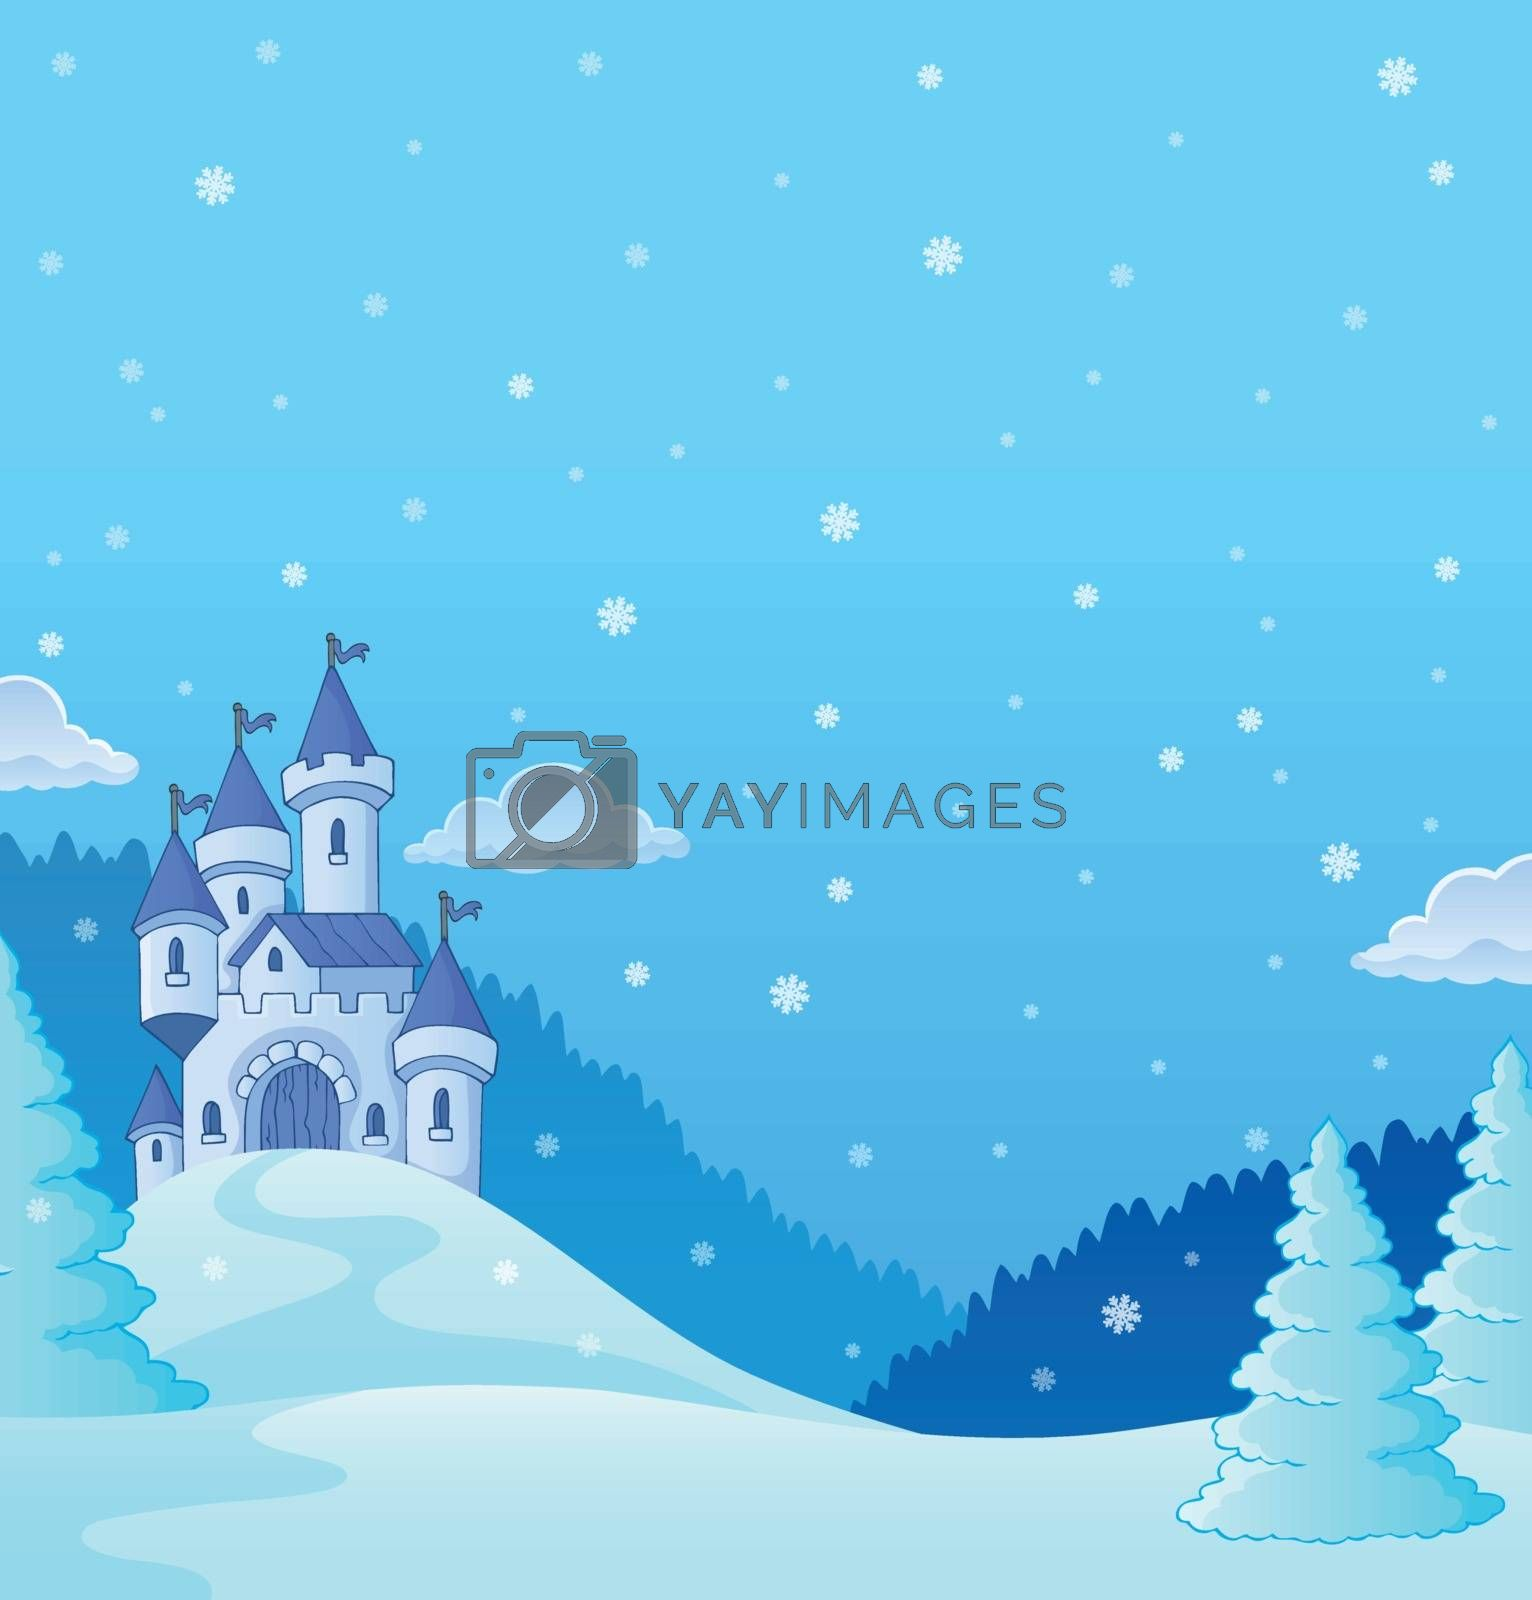 Winter countryside with castle theme 2 - eps10 vector illustration.